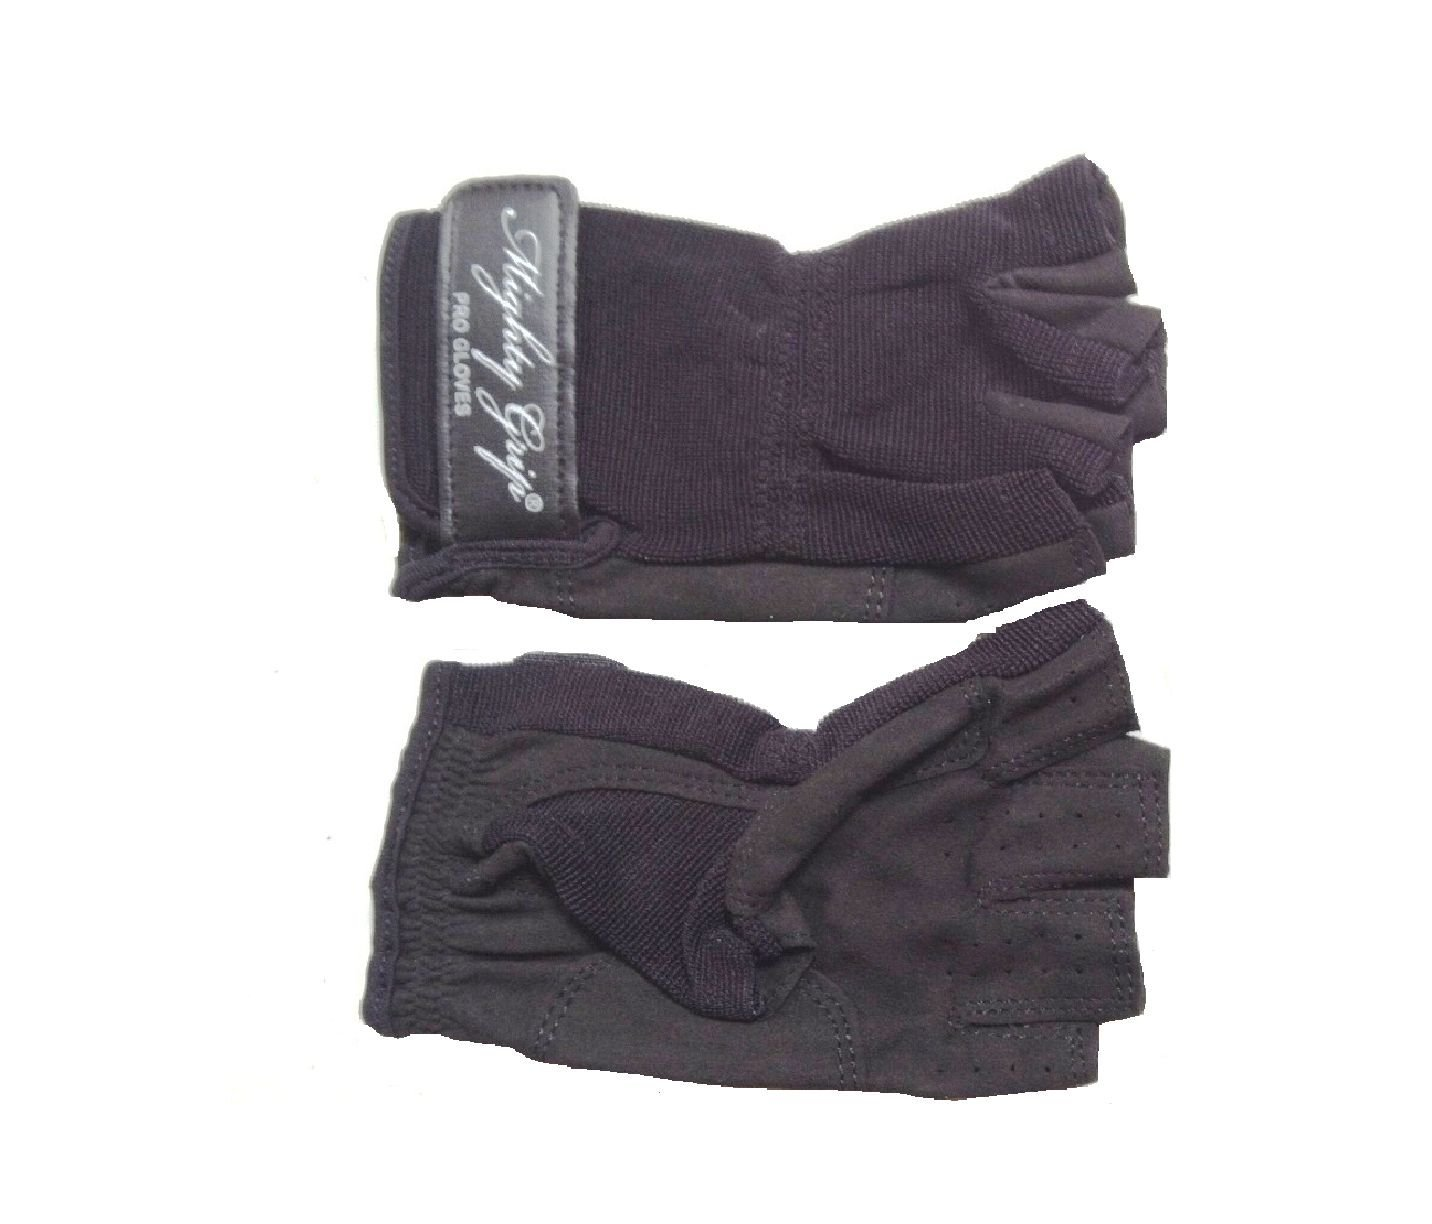 Mighty Grip Tacky Gloves for Dance Pole Fitness and Yoga Safety 1 Pair